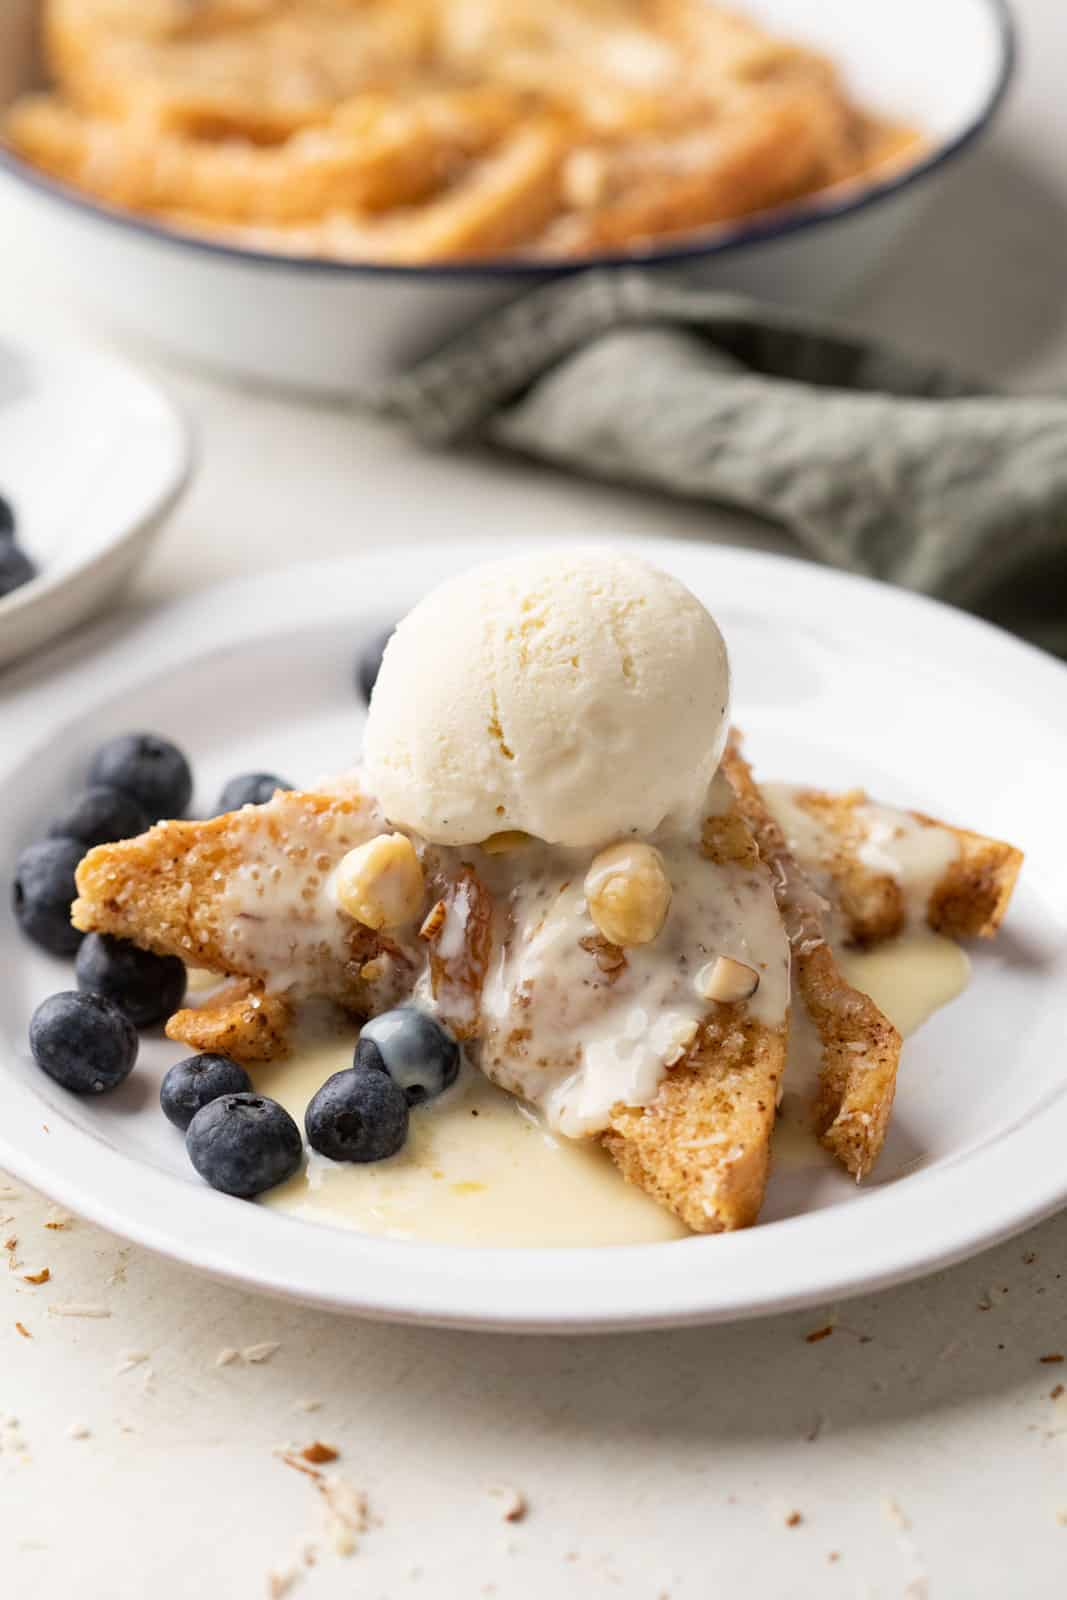 Cinnamon bread pudding served on a plate topped with rum custard sauce and a scoop of ice cream